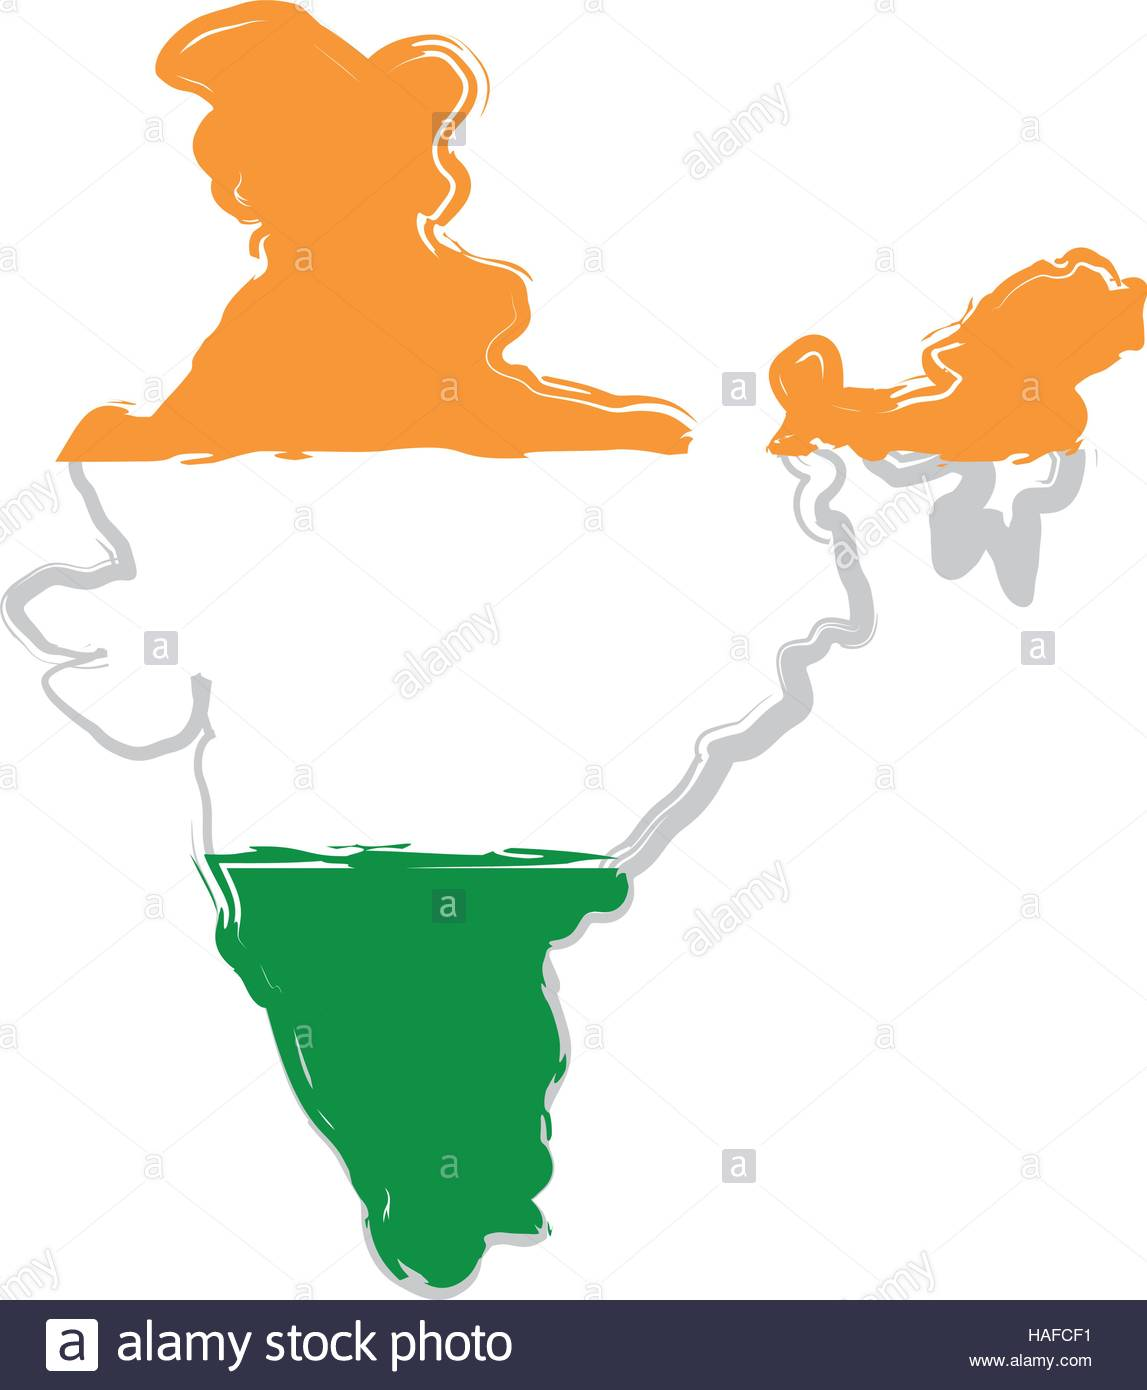 1147x1390 India Map Silhouette Stock Vector Art Amp Illustration, Vector Image